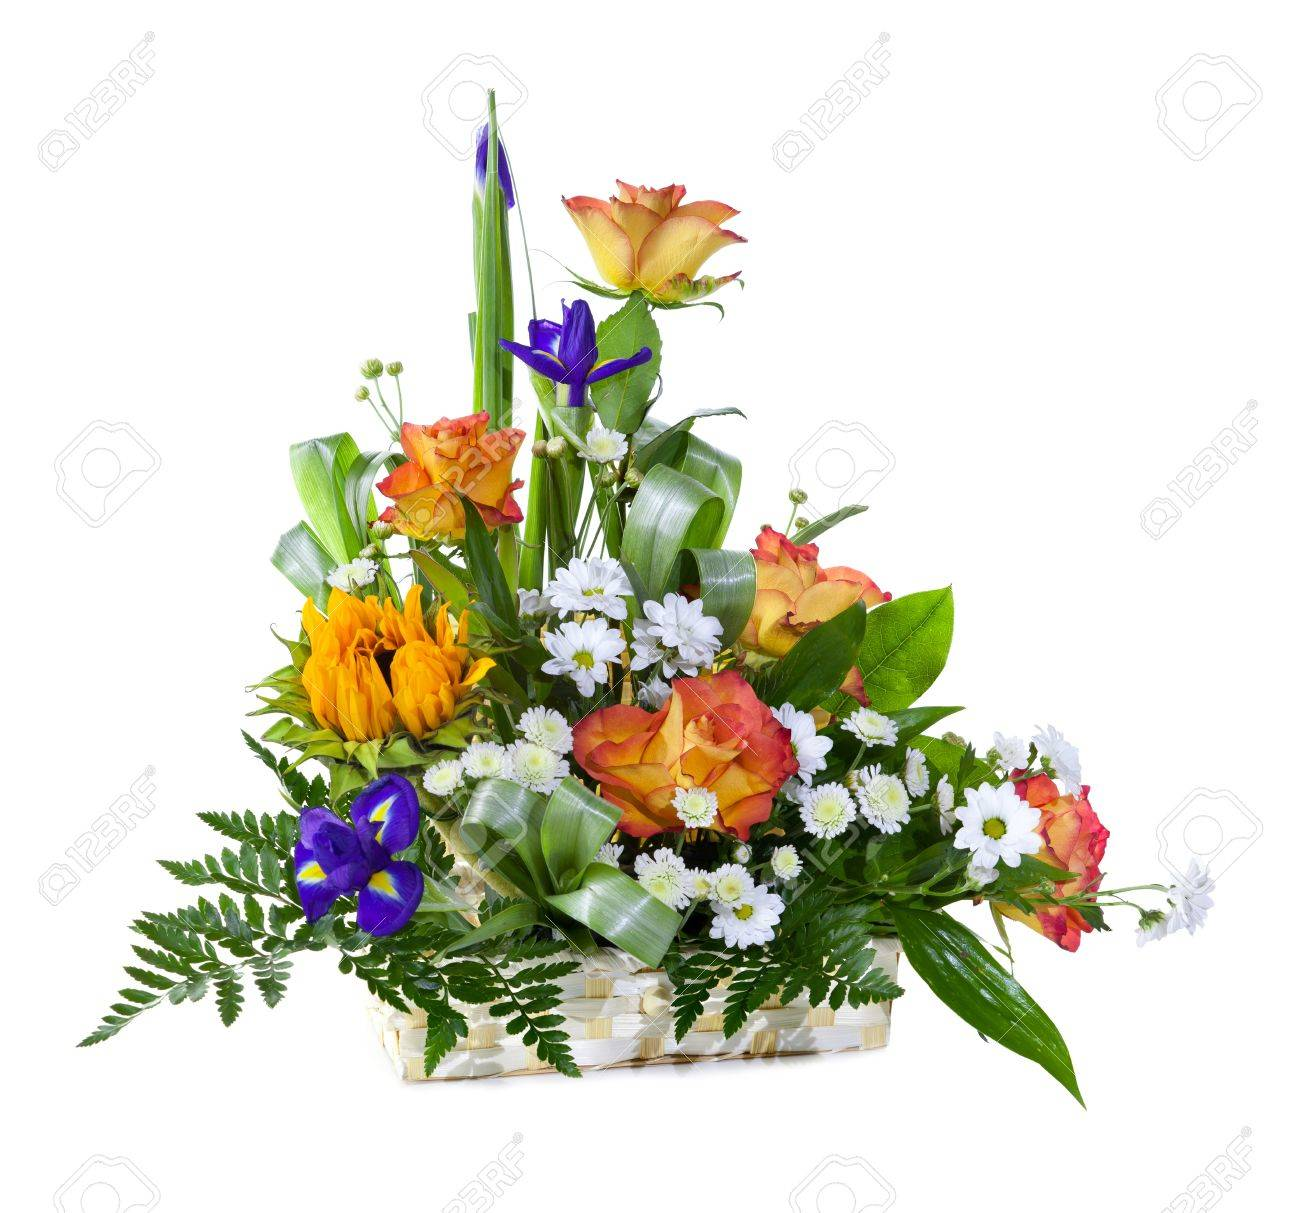 Big basket images stock pictures royalty free big basket photos big basket bright flower bouquet in basket isolated over white background dhlflorist Gallery